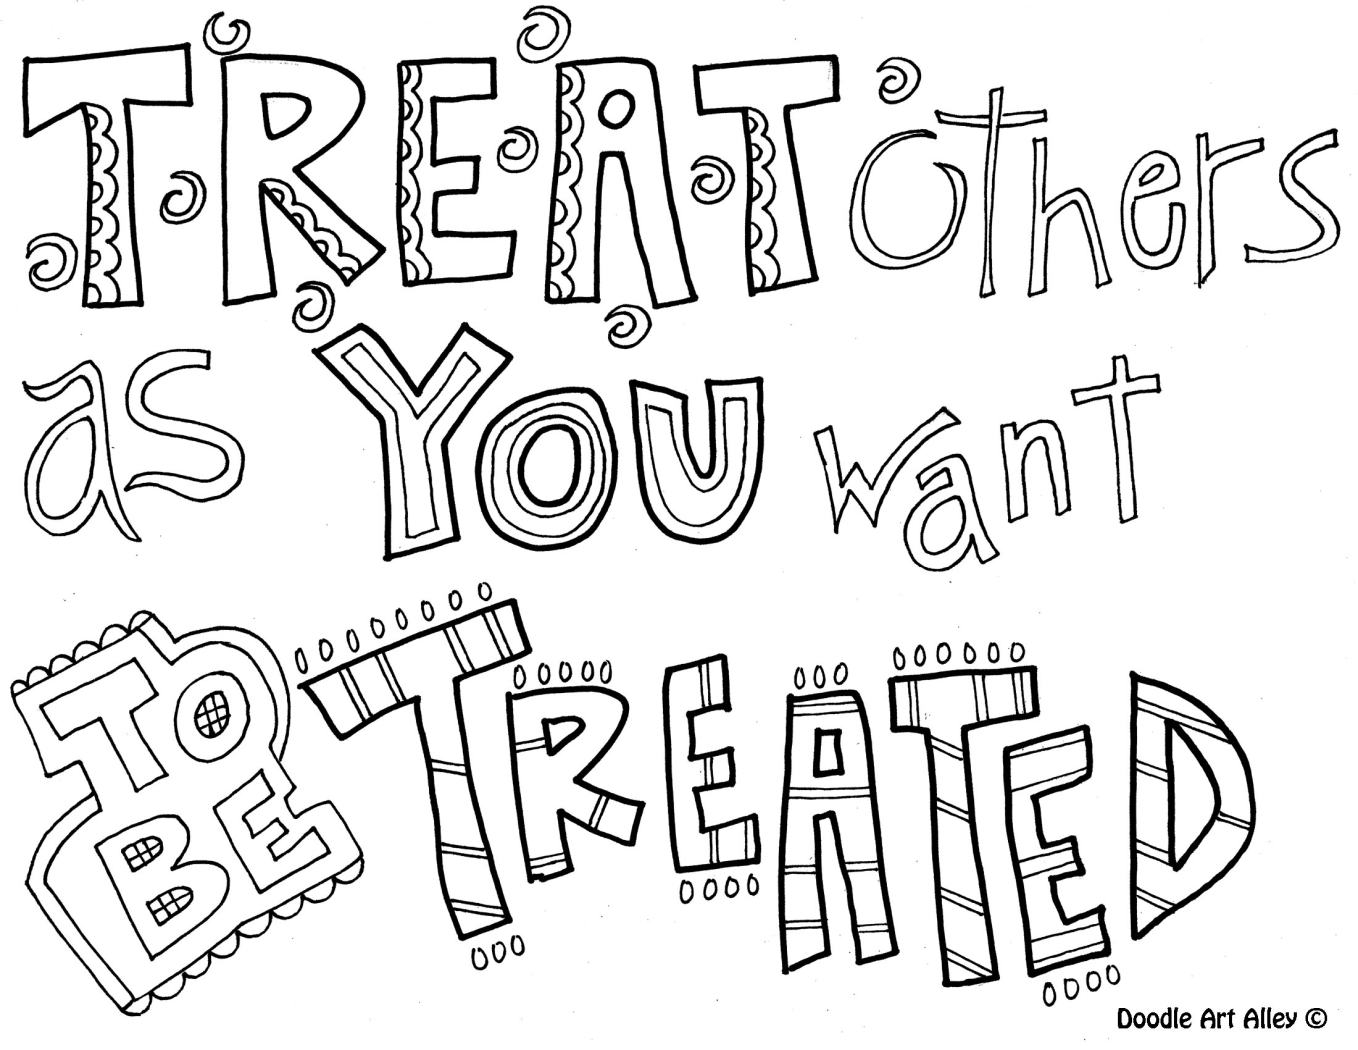 Kindness Coloring Pages Png Free Kindness Coloring Pages Png Transparent Images 106275 Pngio